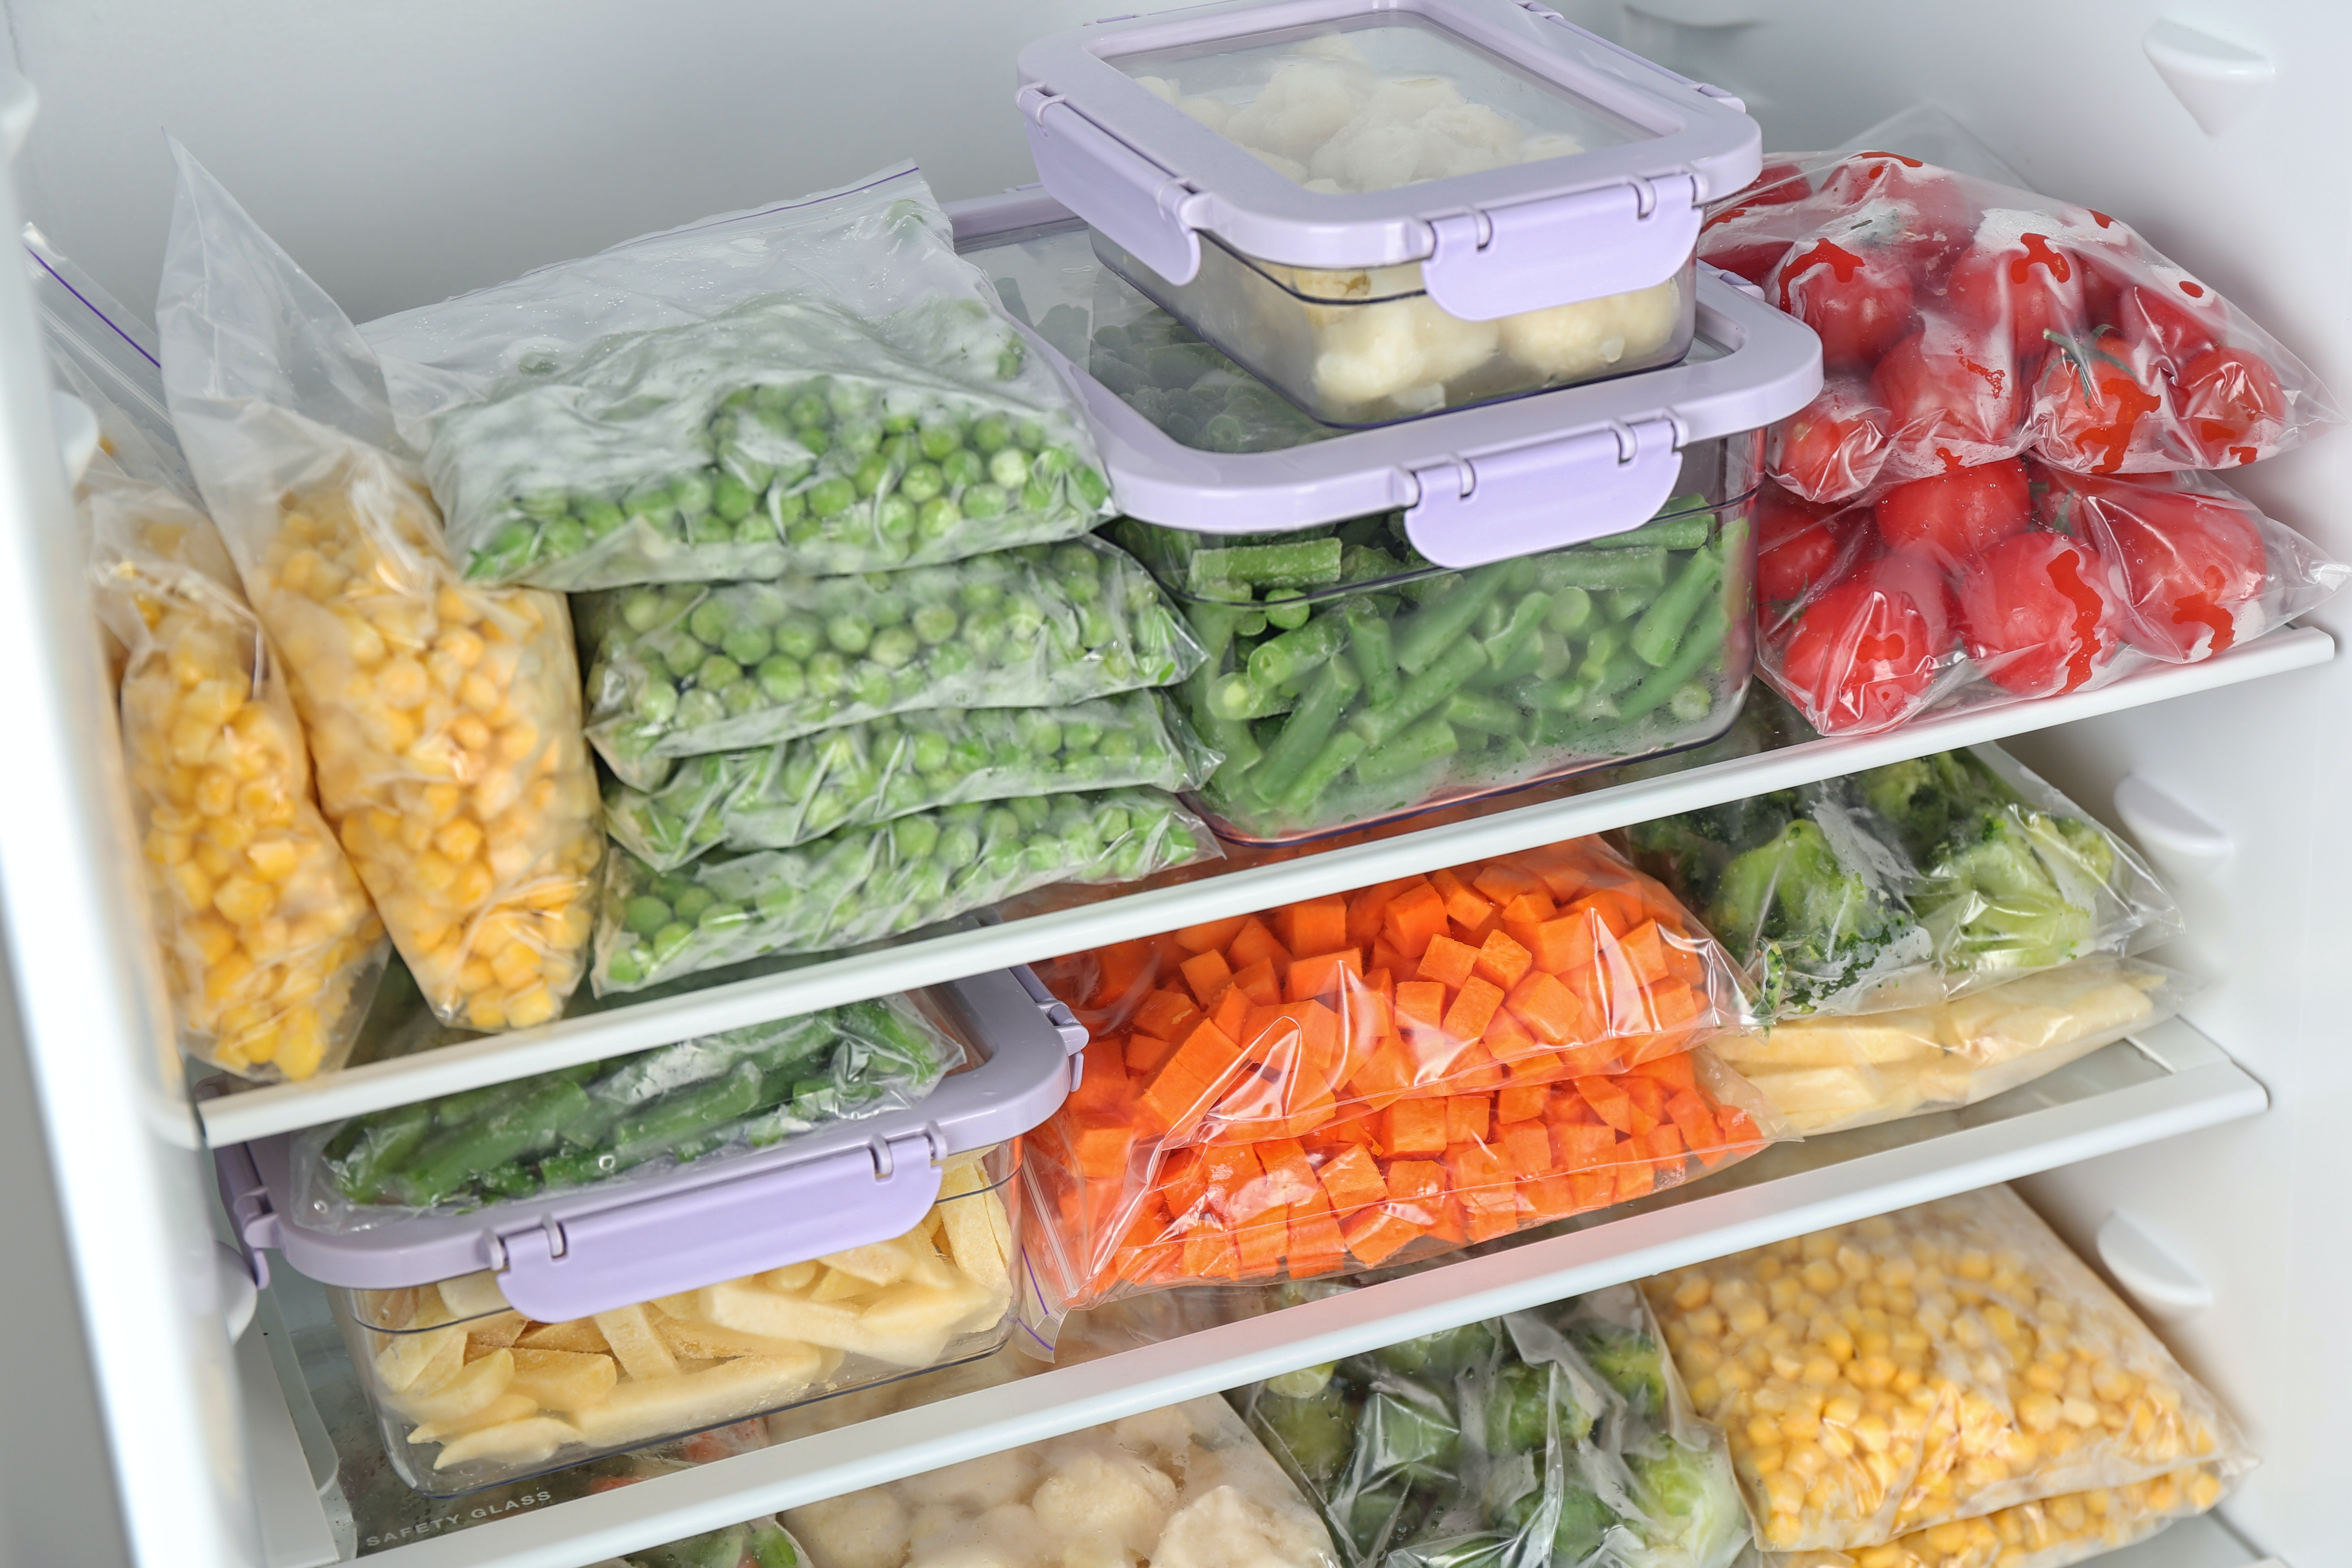 Close-up of food stored in a freezer.